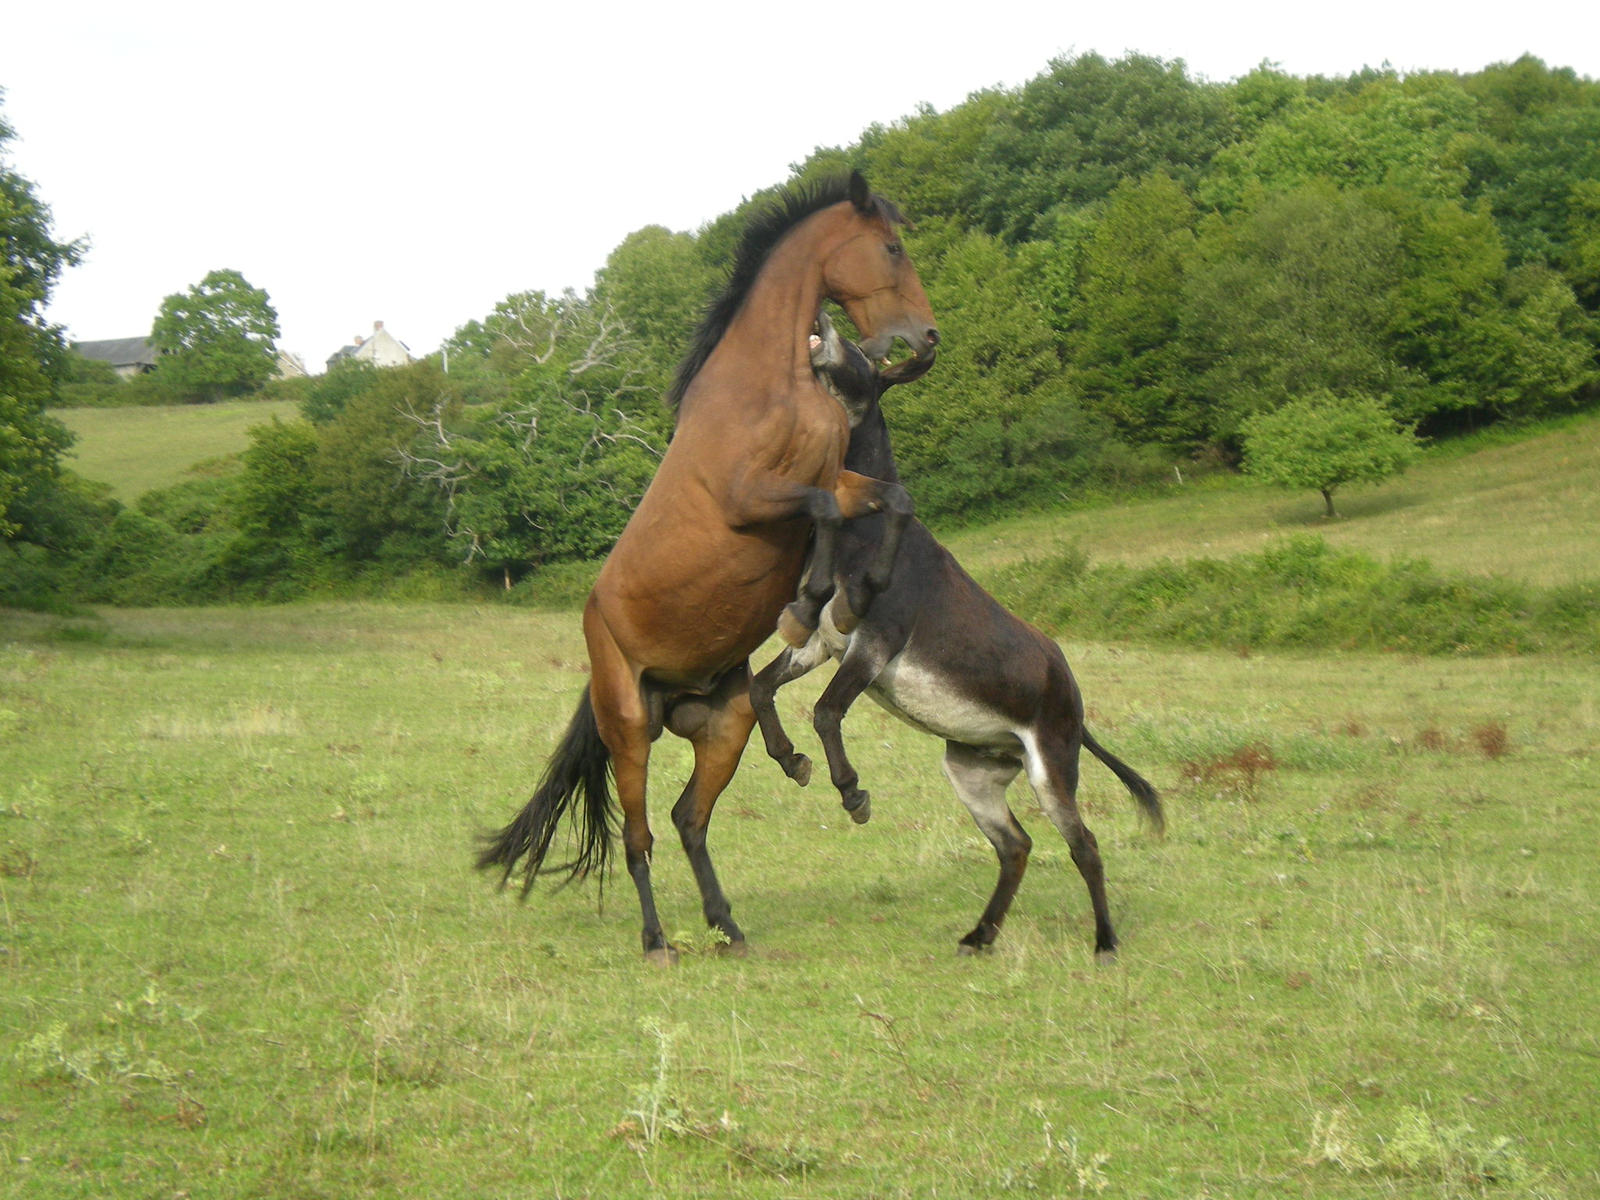 horse and donkey playing by pluvier croisette on deviantart